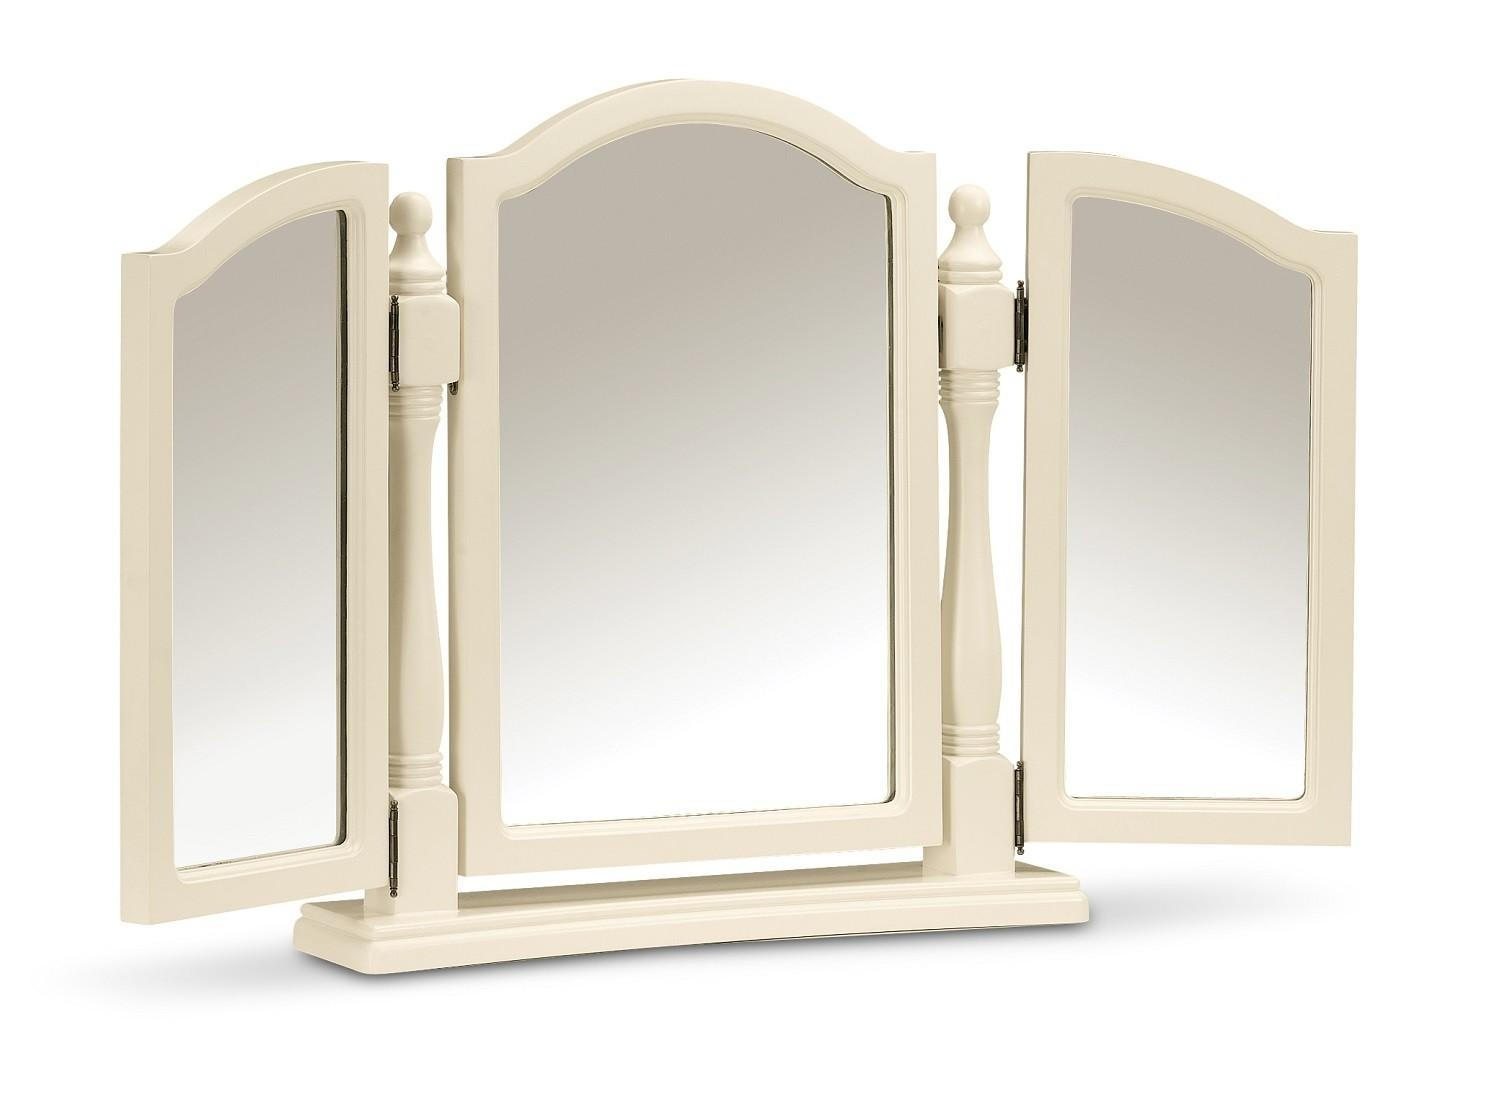 Solid Wood Dressing Table Mirrors | Oak | Oak Furniture Uk Inside Dressing Table Mirror (Image 14 of 20)